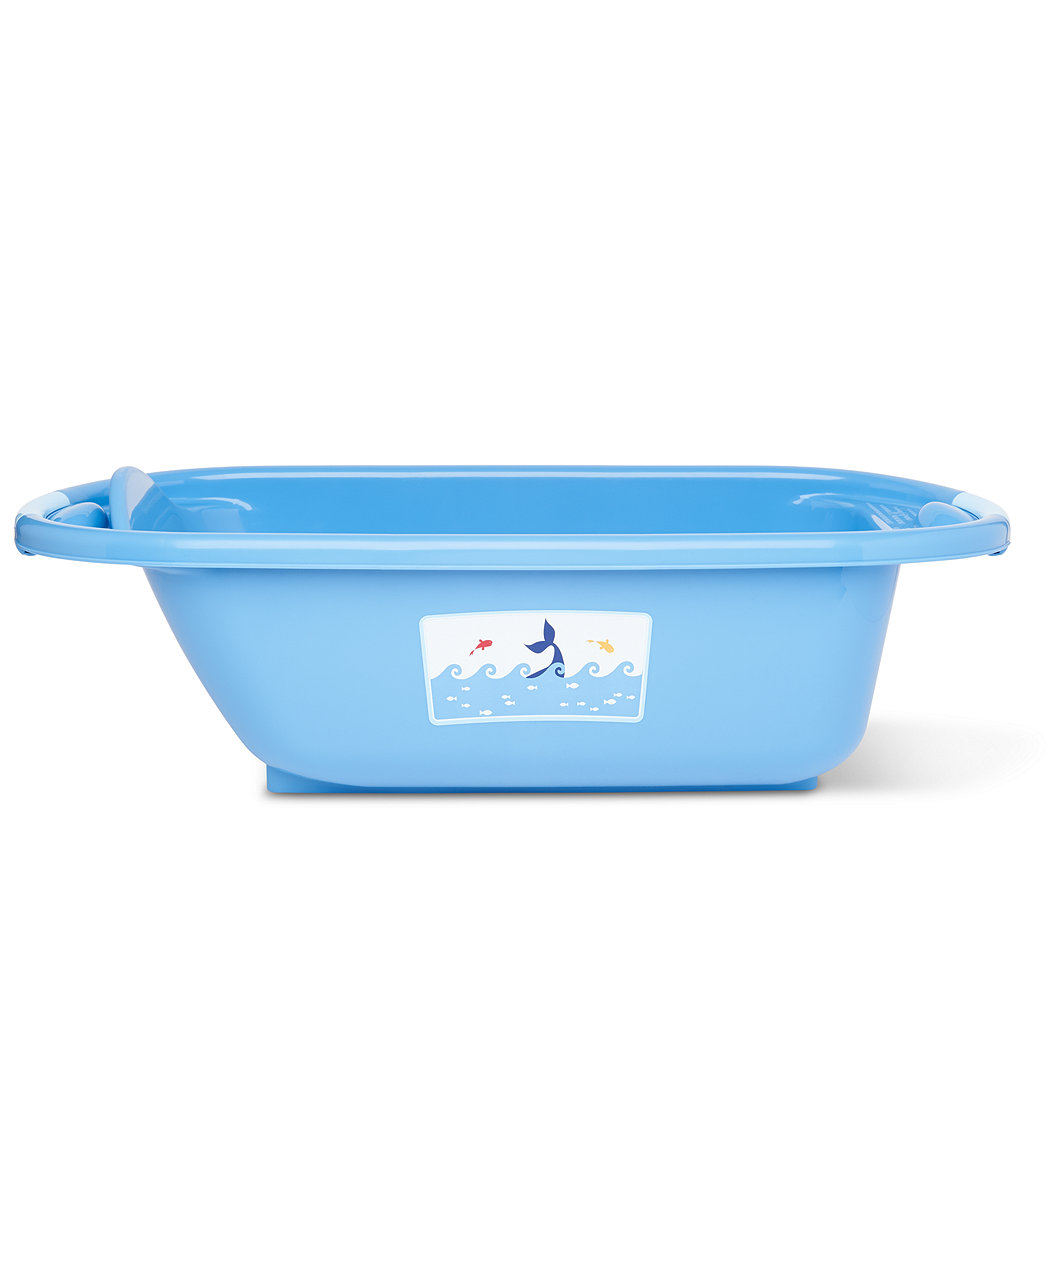 Mothercare Whale Bay Baby Bath